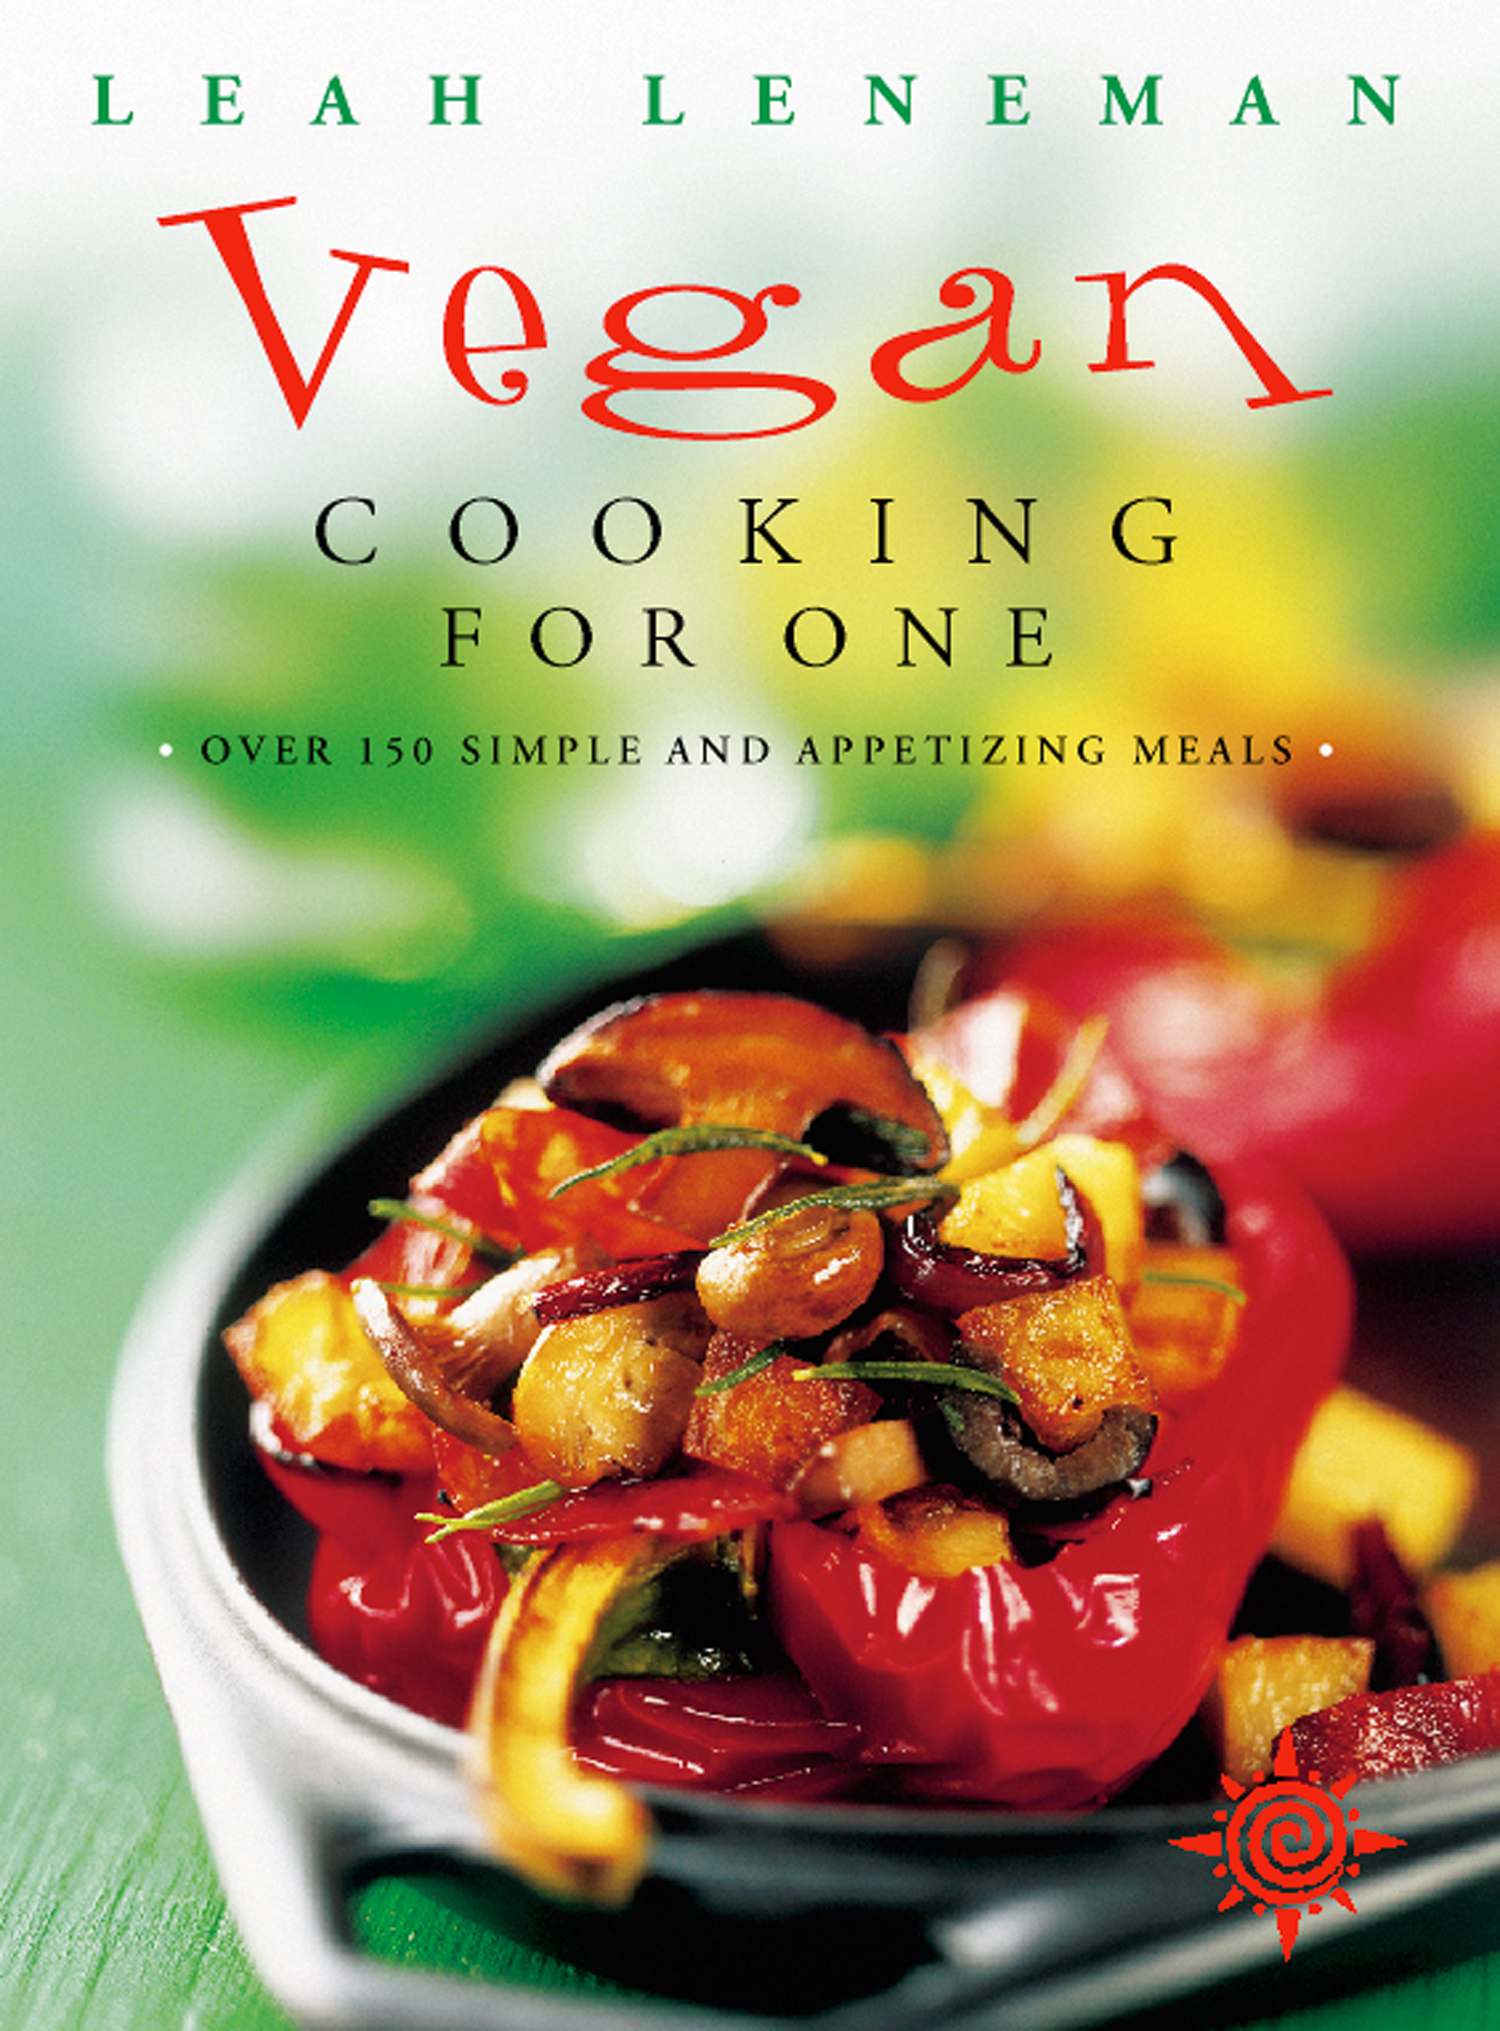 Vegan Cooking for One: Over 150 simple and appetizing meals